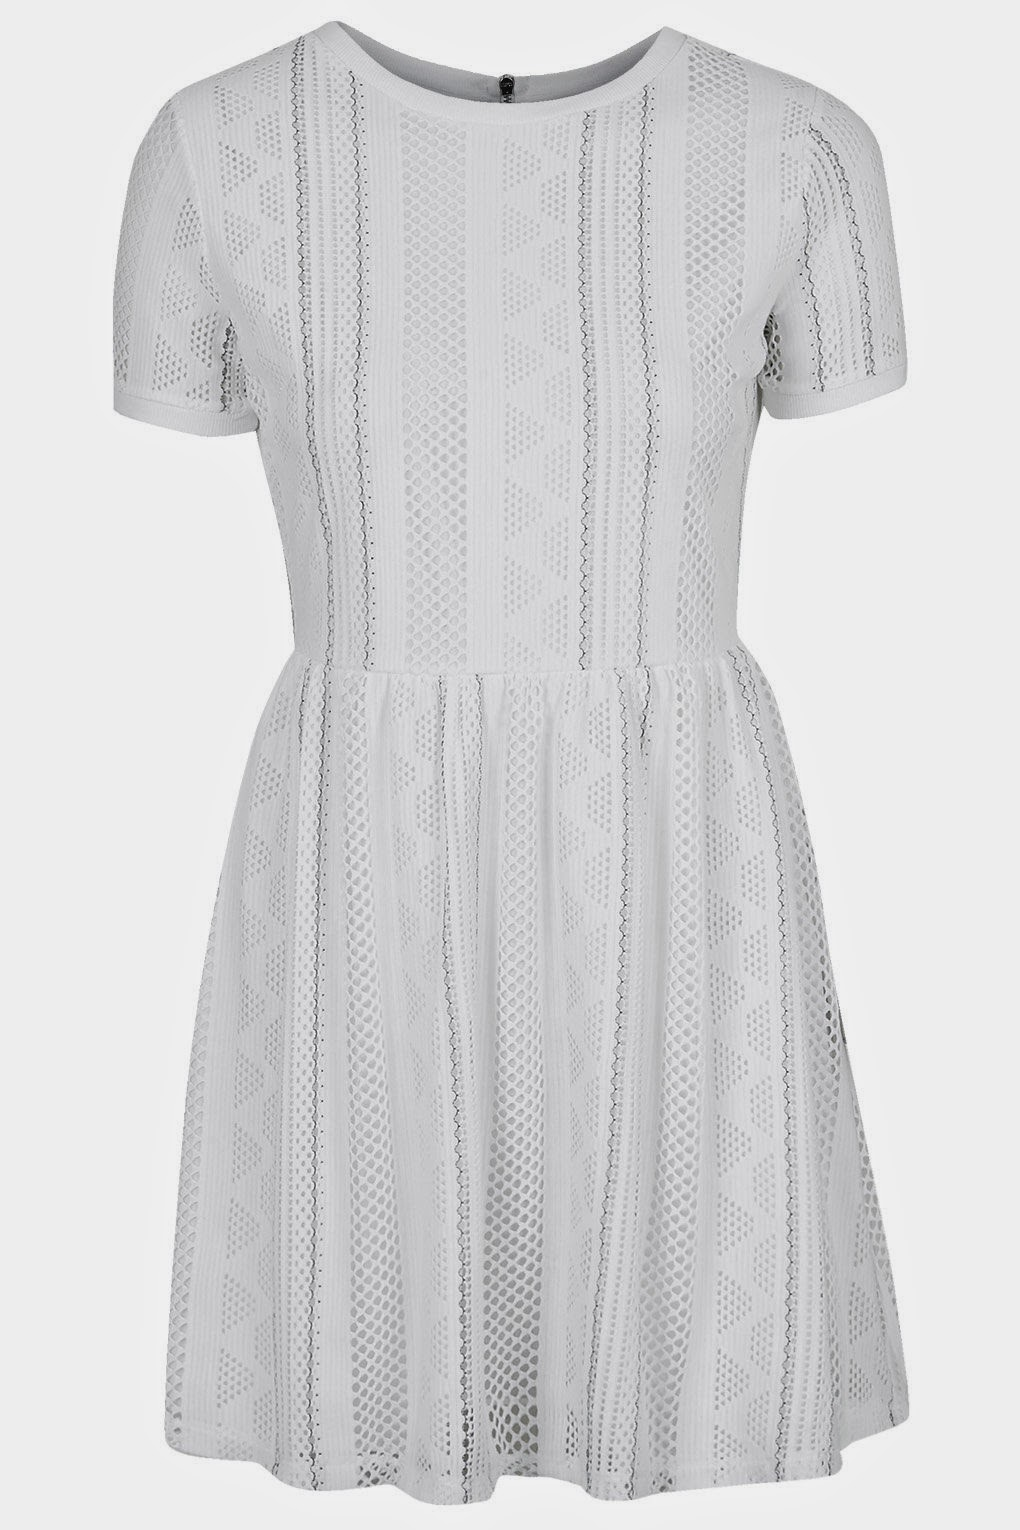 white panel dress, white lace dress topshop,